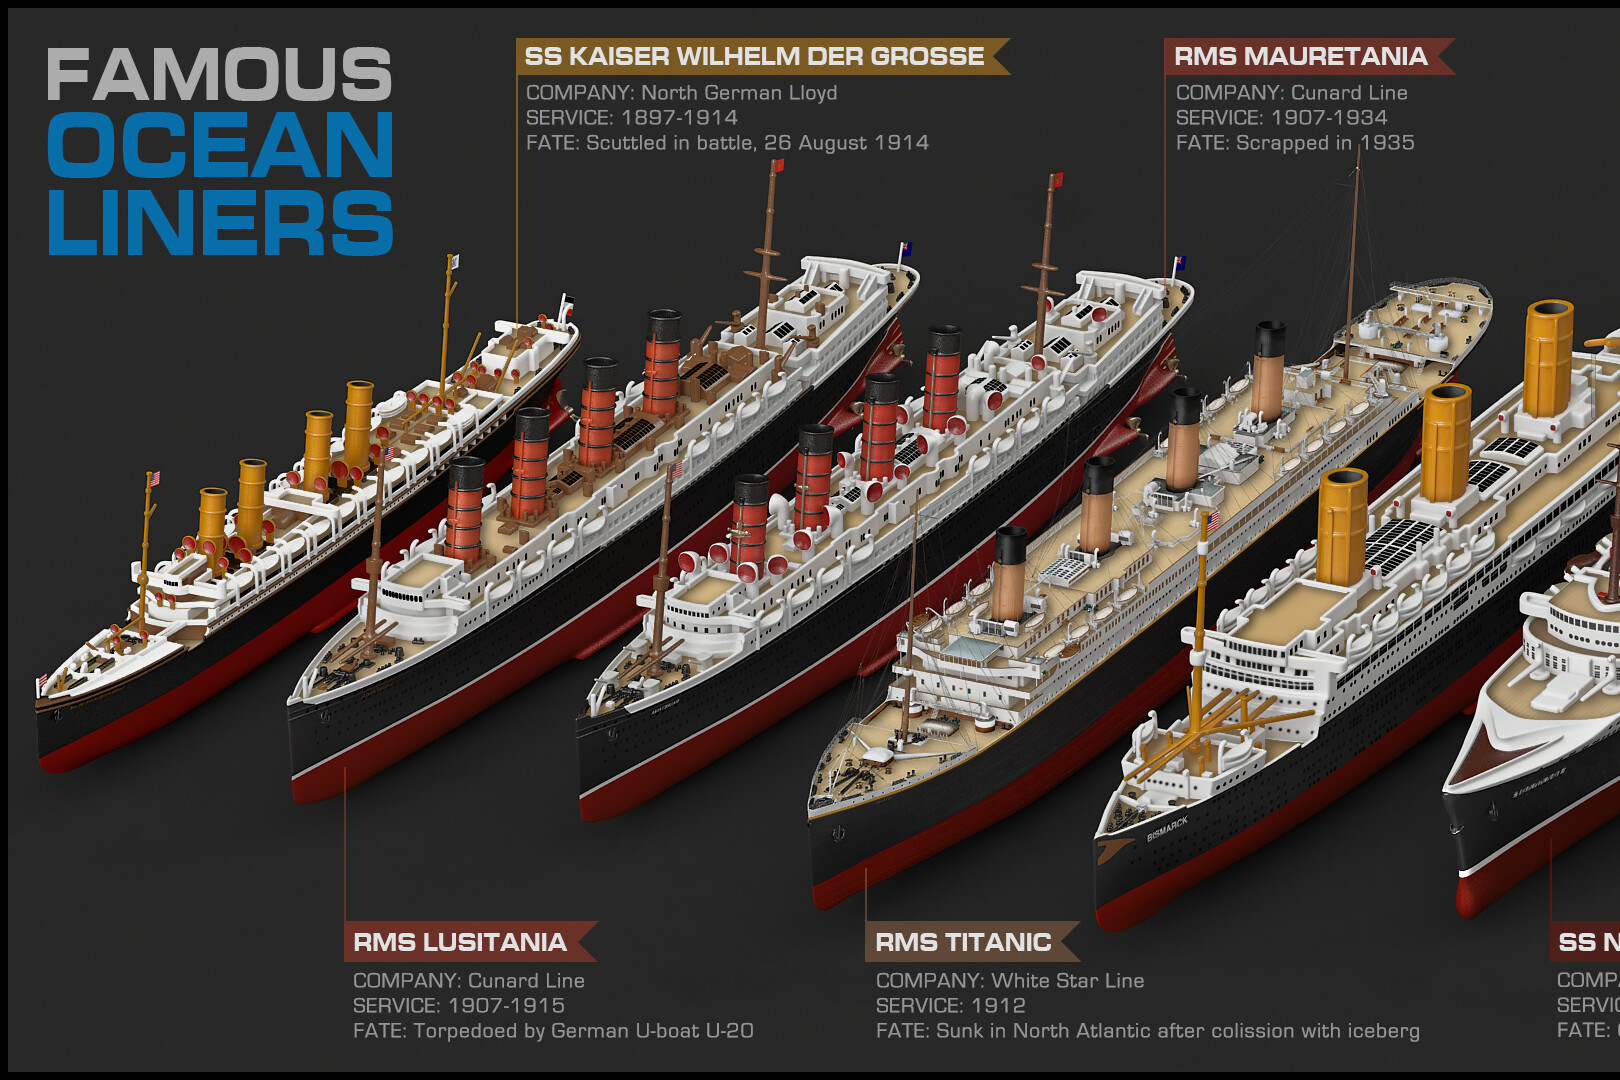 Montage Titanic Trumpeter 1/200 - Page 10 Vasilije-ristovic-famous-ocean-liners-inforgraphic-left